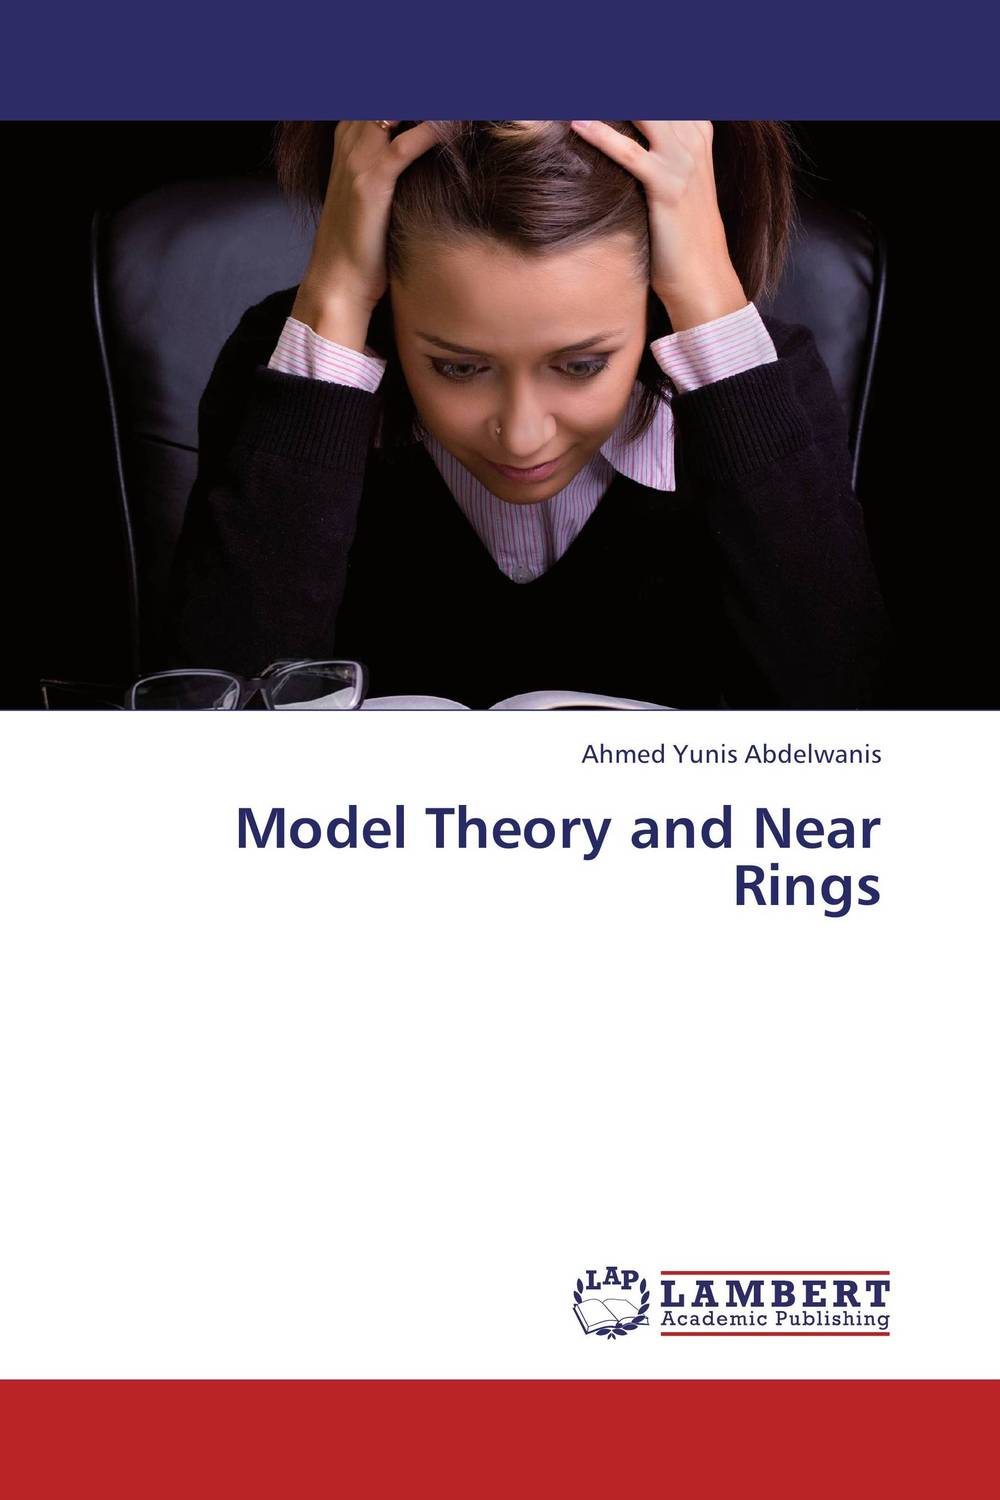 Model Theory and Near Rings